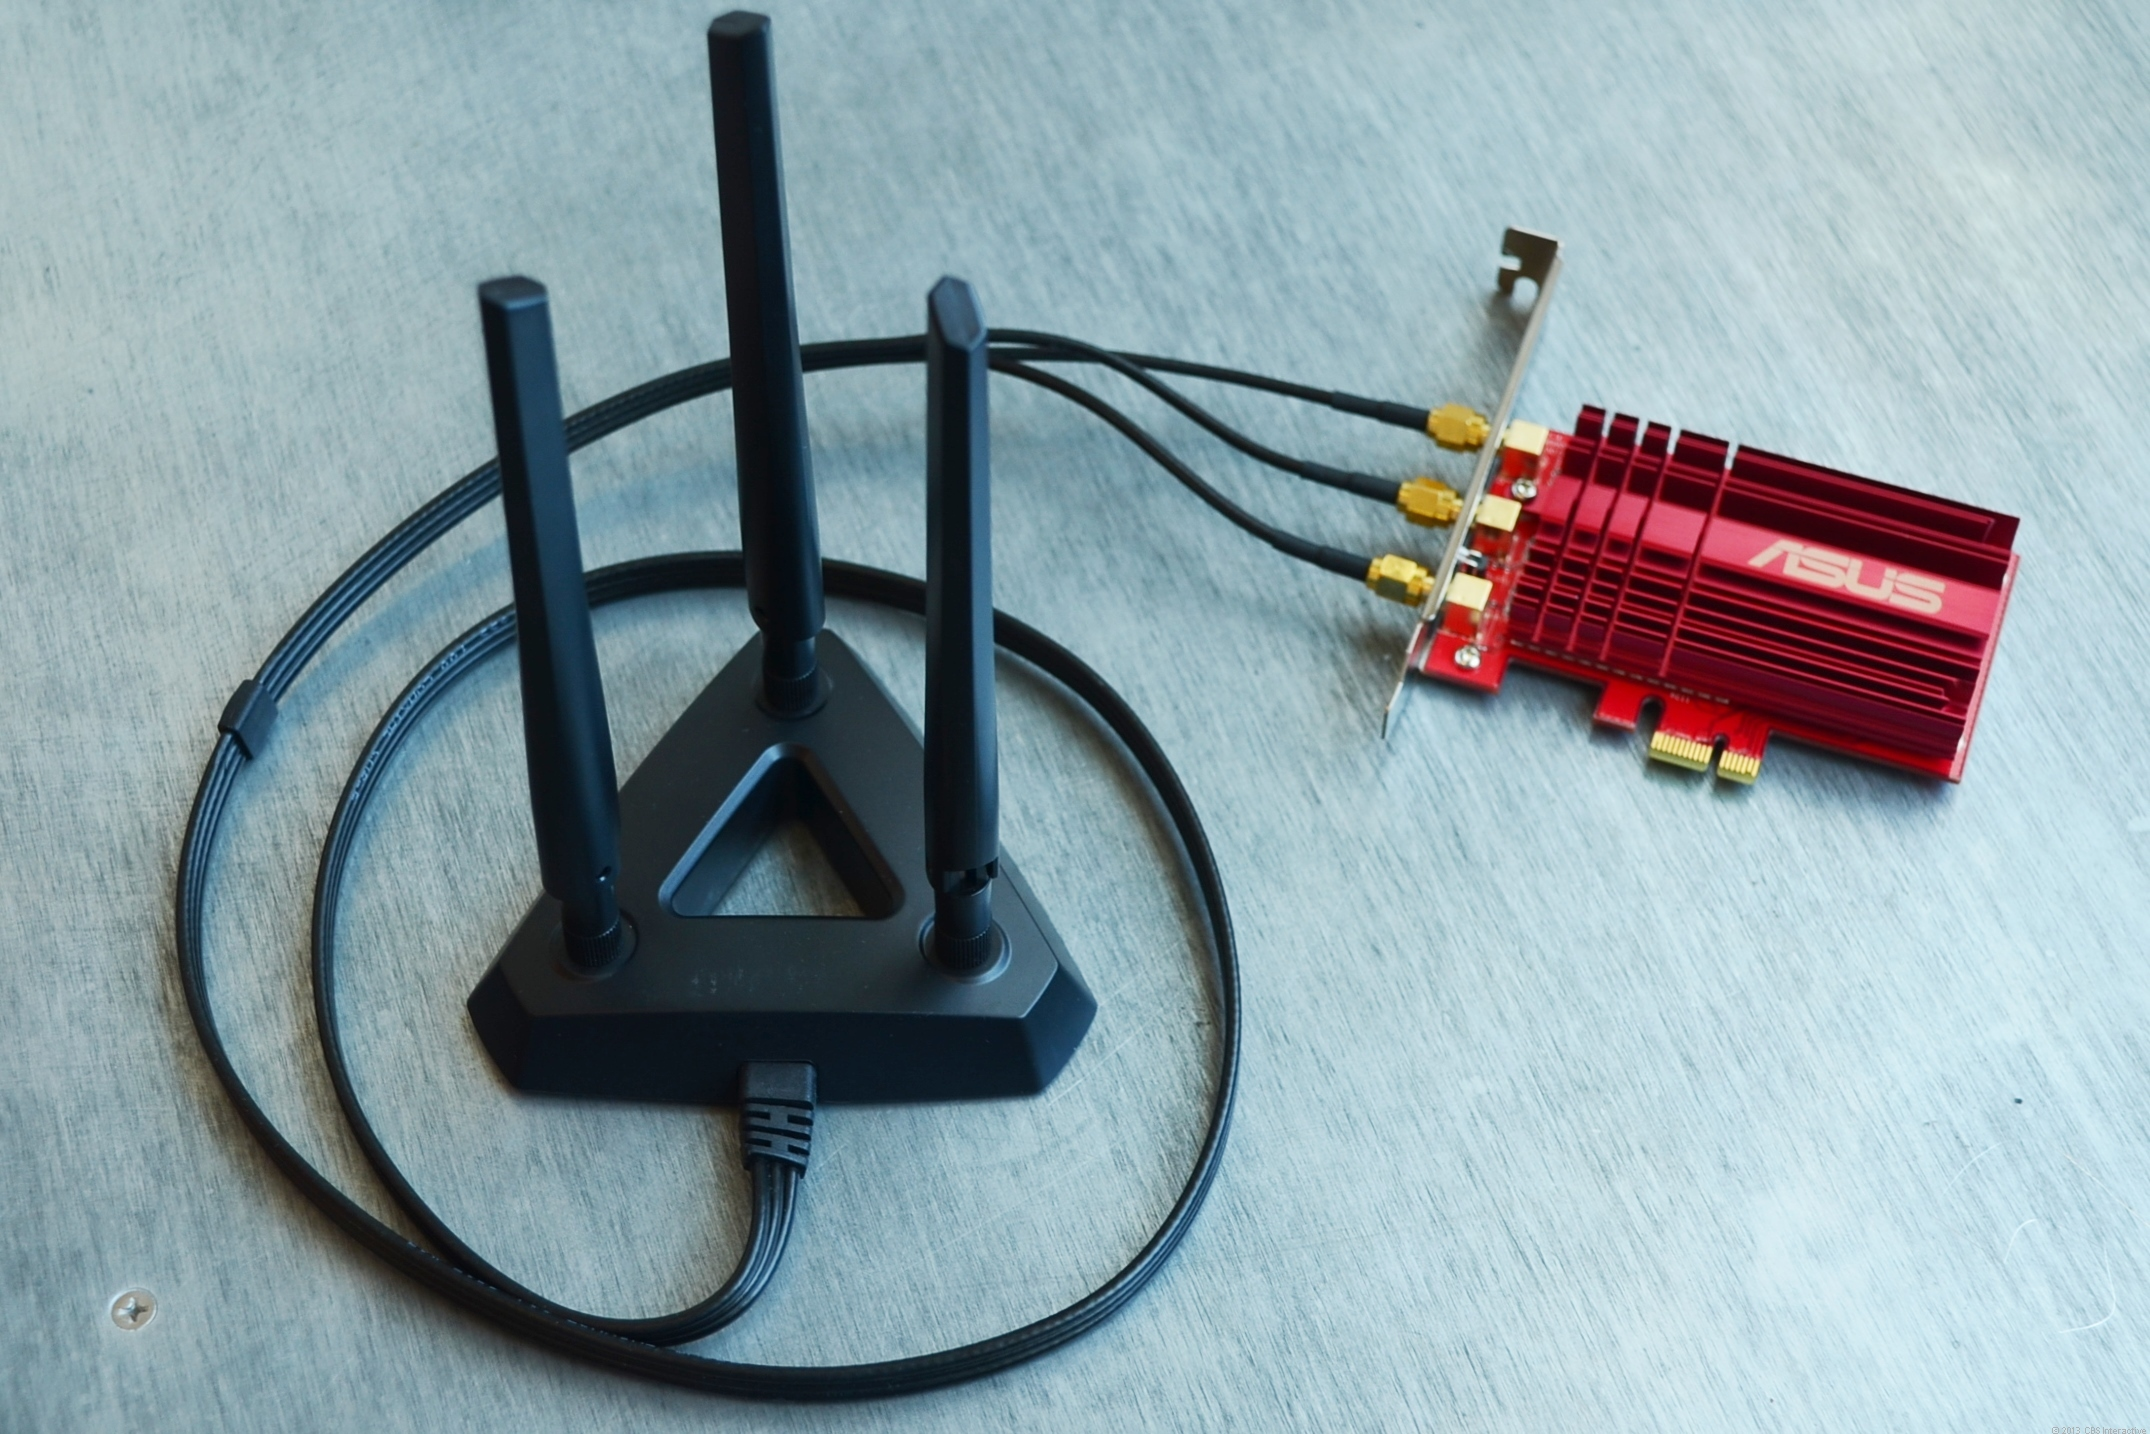 The included magnetic antenna base helps extend the range and makes the positioning of the antennae flexible.